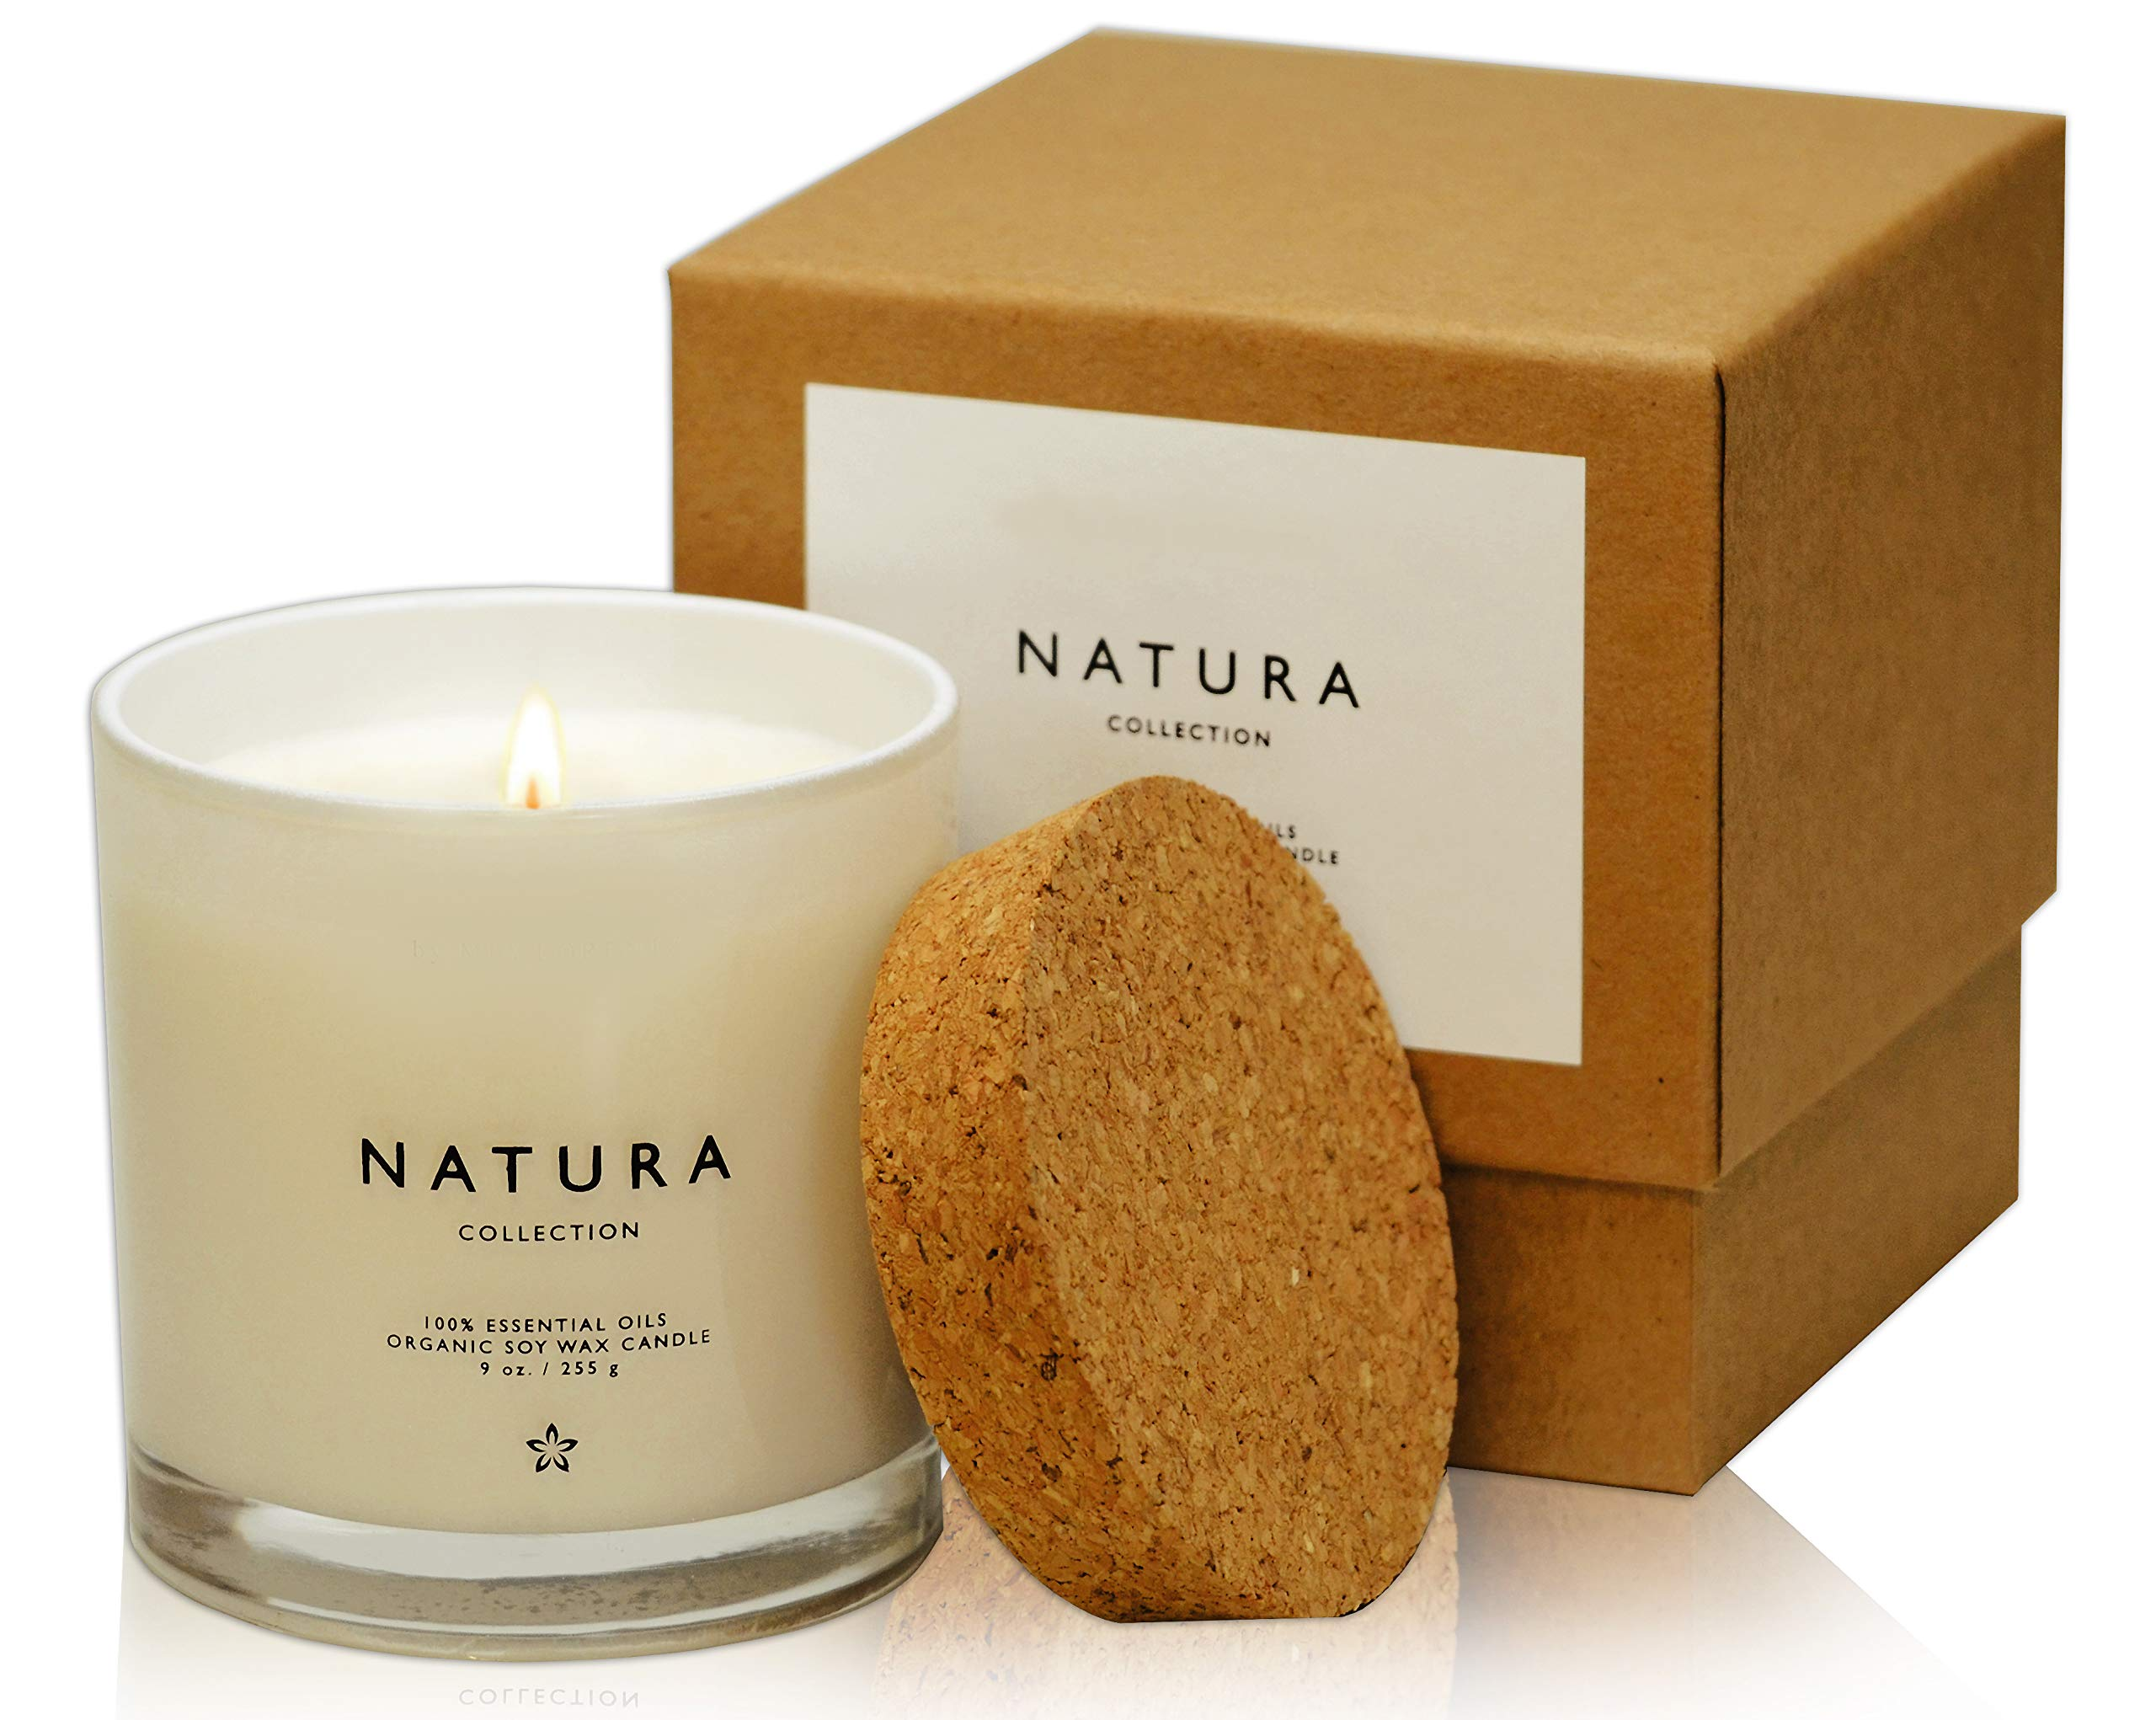 Lulu Candles Natura 100% Organic Soy Vegan Wax Candle with 100% Belgium Lavender Organic Essential Oil - 100% Cotton Lead Free Wicks - Paraffin Free - Paraben & Phthalate Free - Eco Friendly